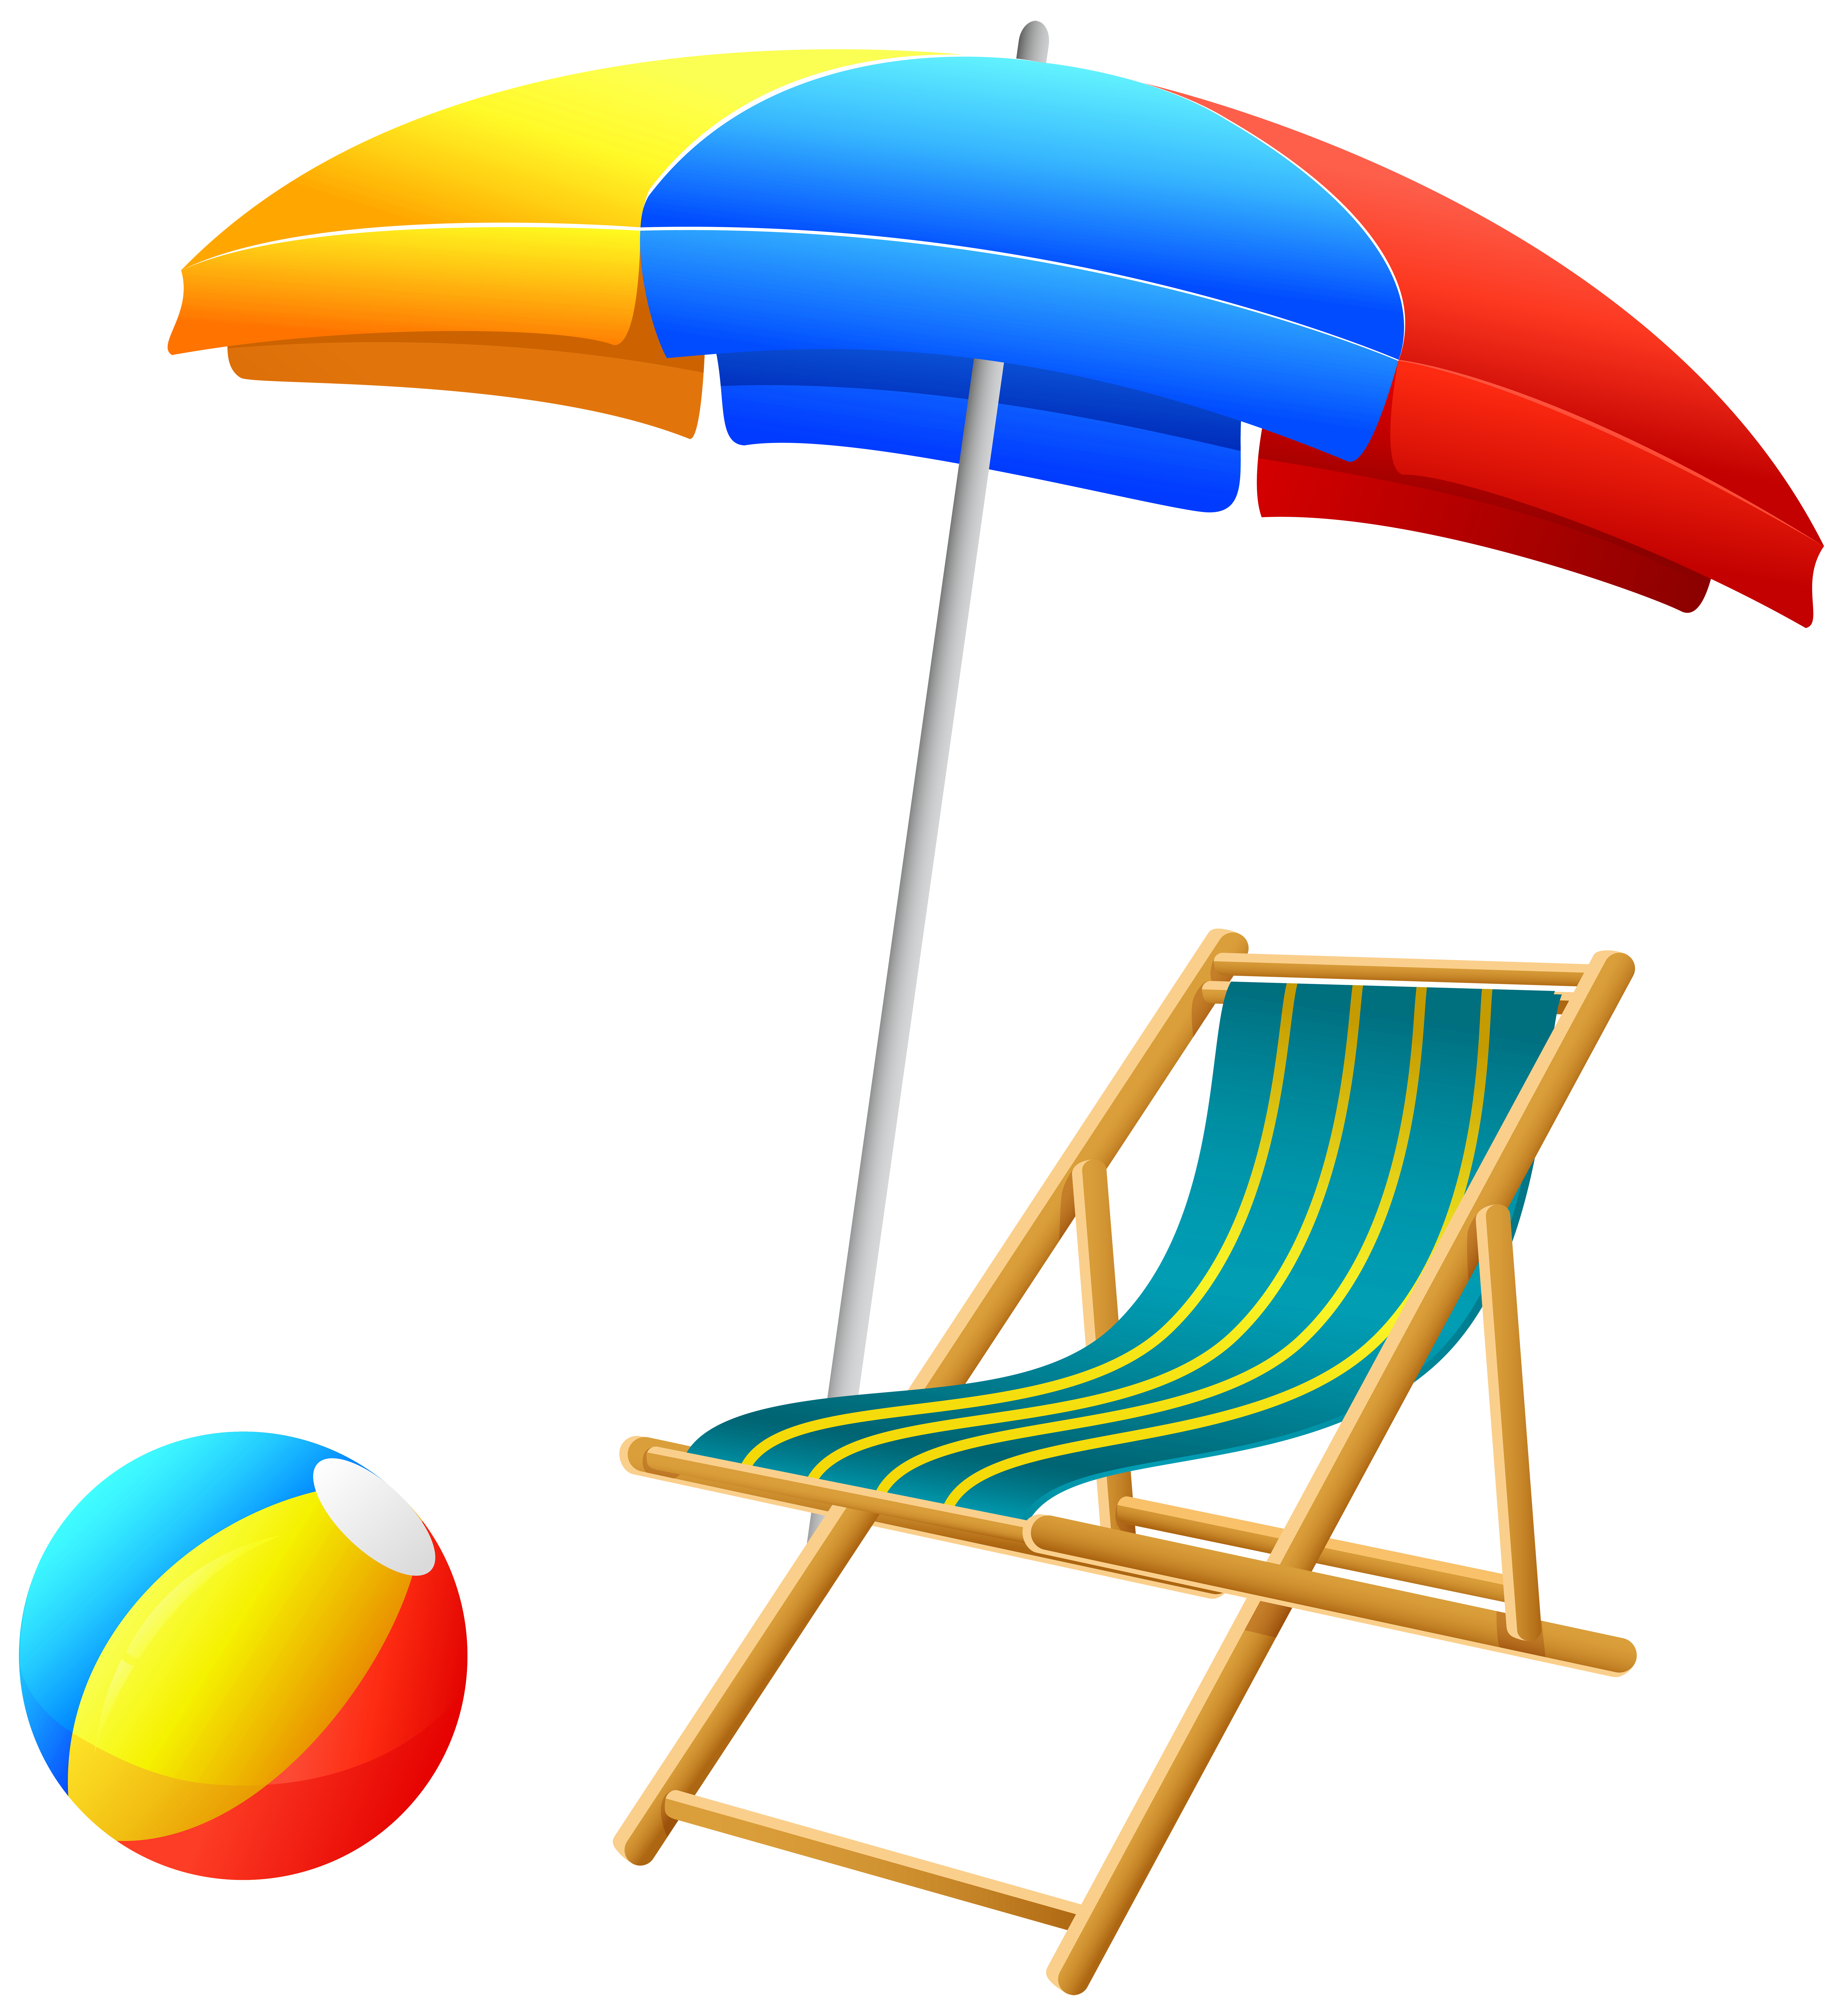 best lounge chair ball clipart the chair